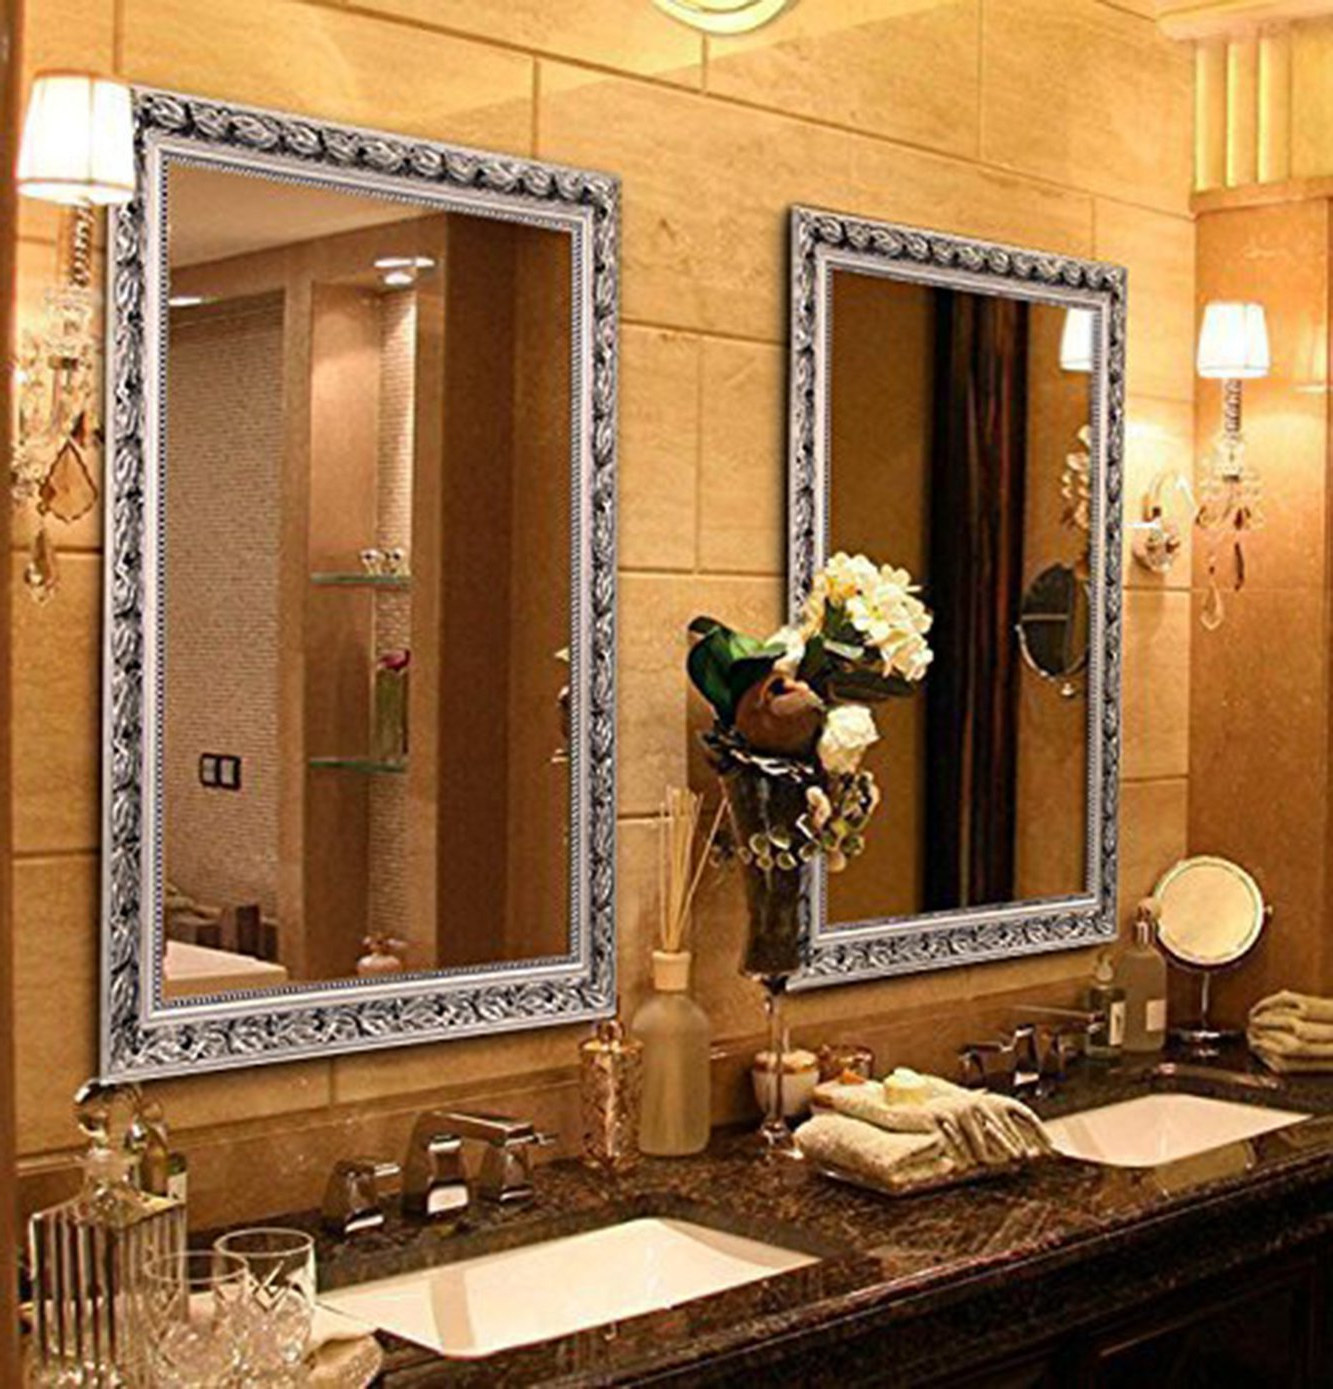 """Current Bathroom Full Wall Mirrors Throughout Large Rectangular Bathroom Mirror, Wall Mounted Wooden Frame Vanity Mirror,  Silver (32""""x24"""") (View 14 of 20)"""